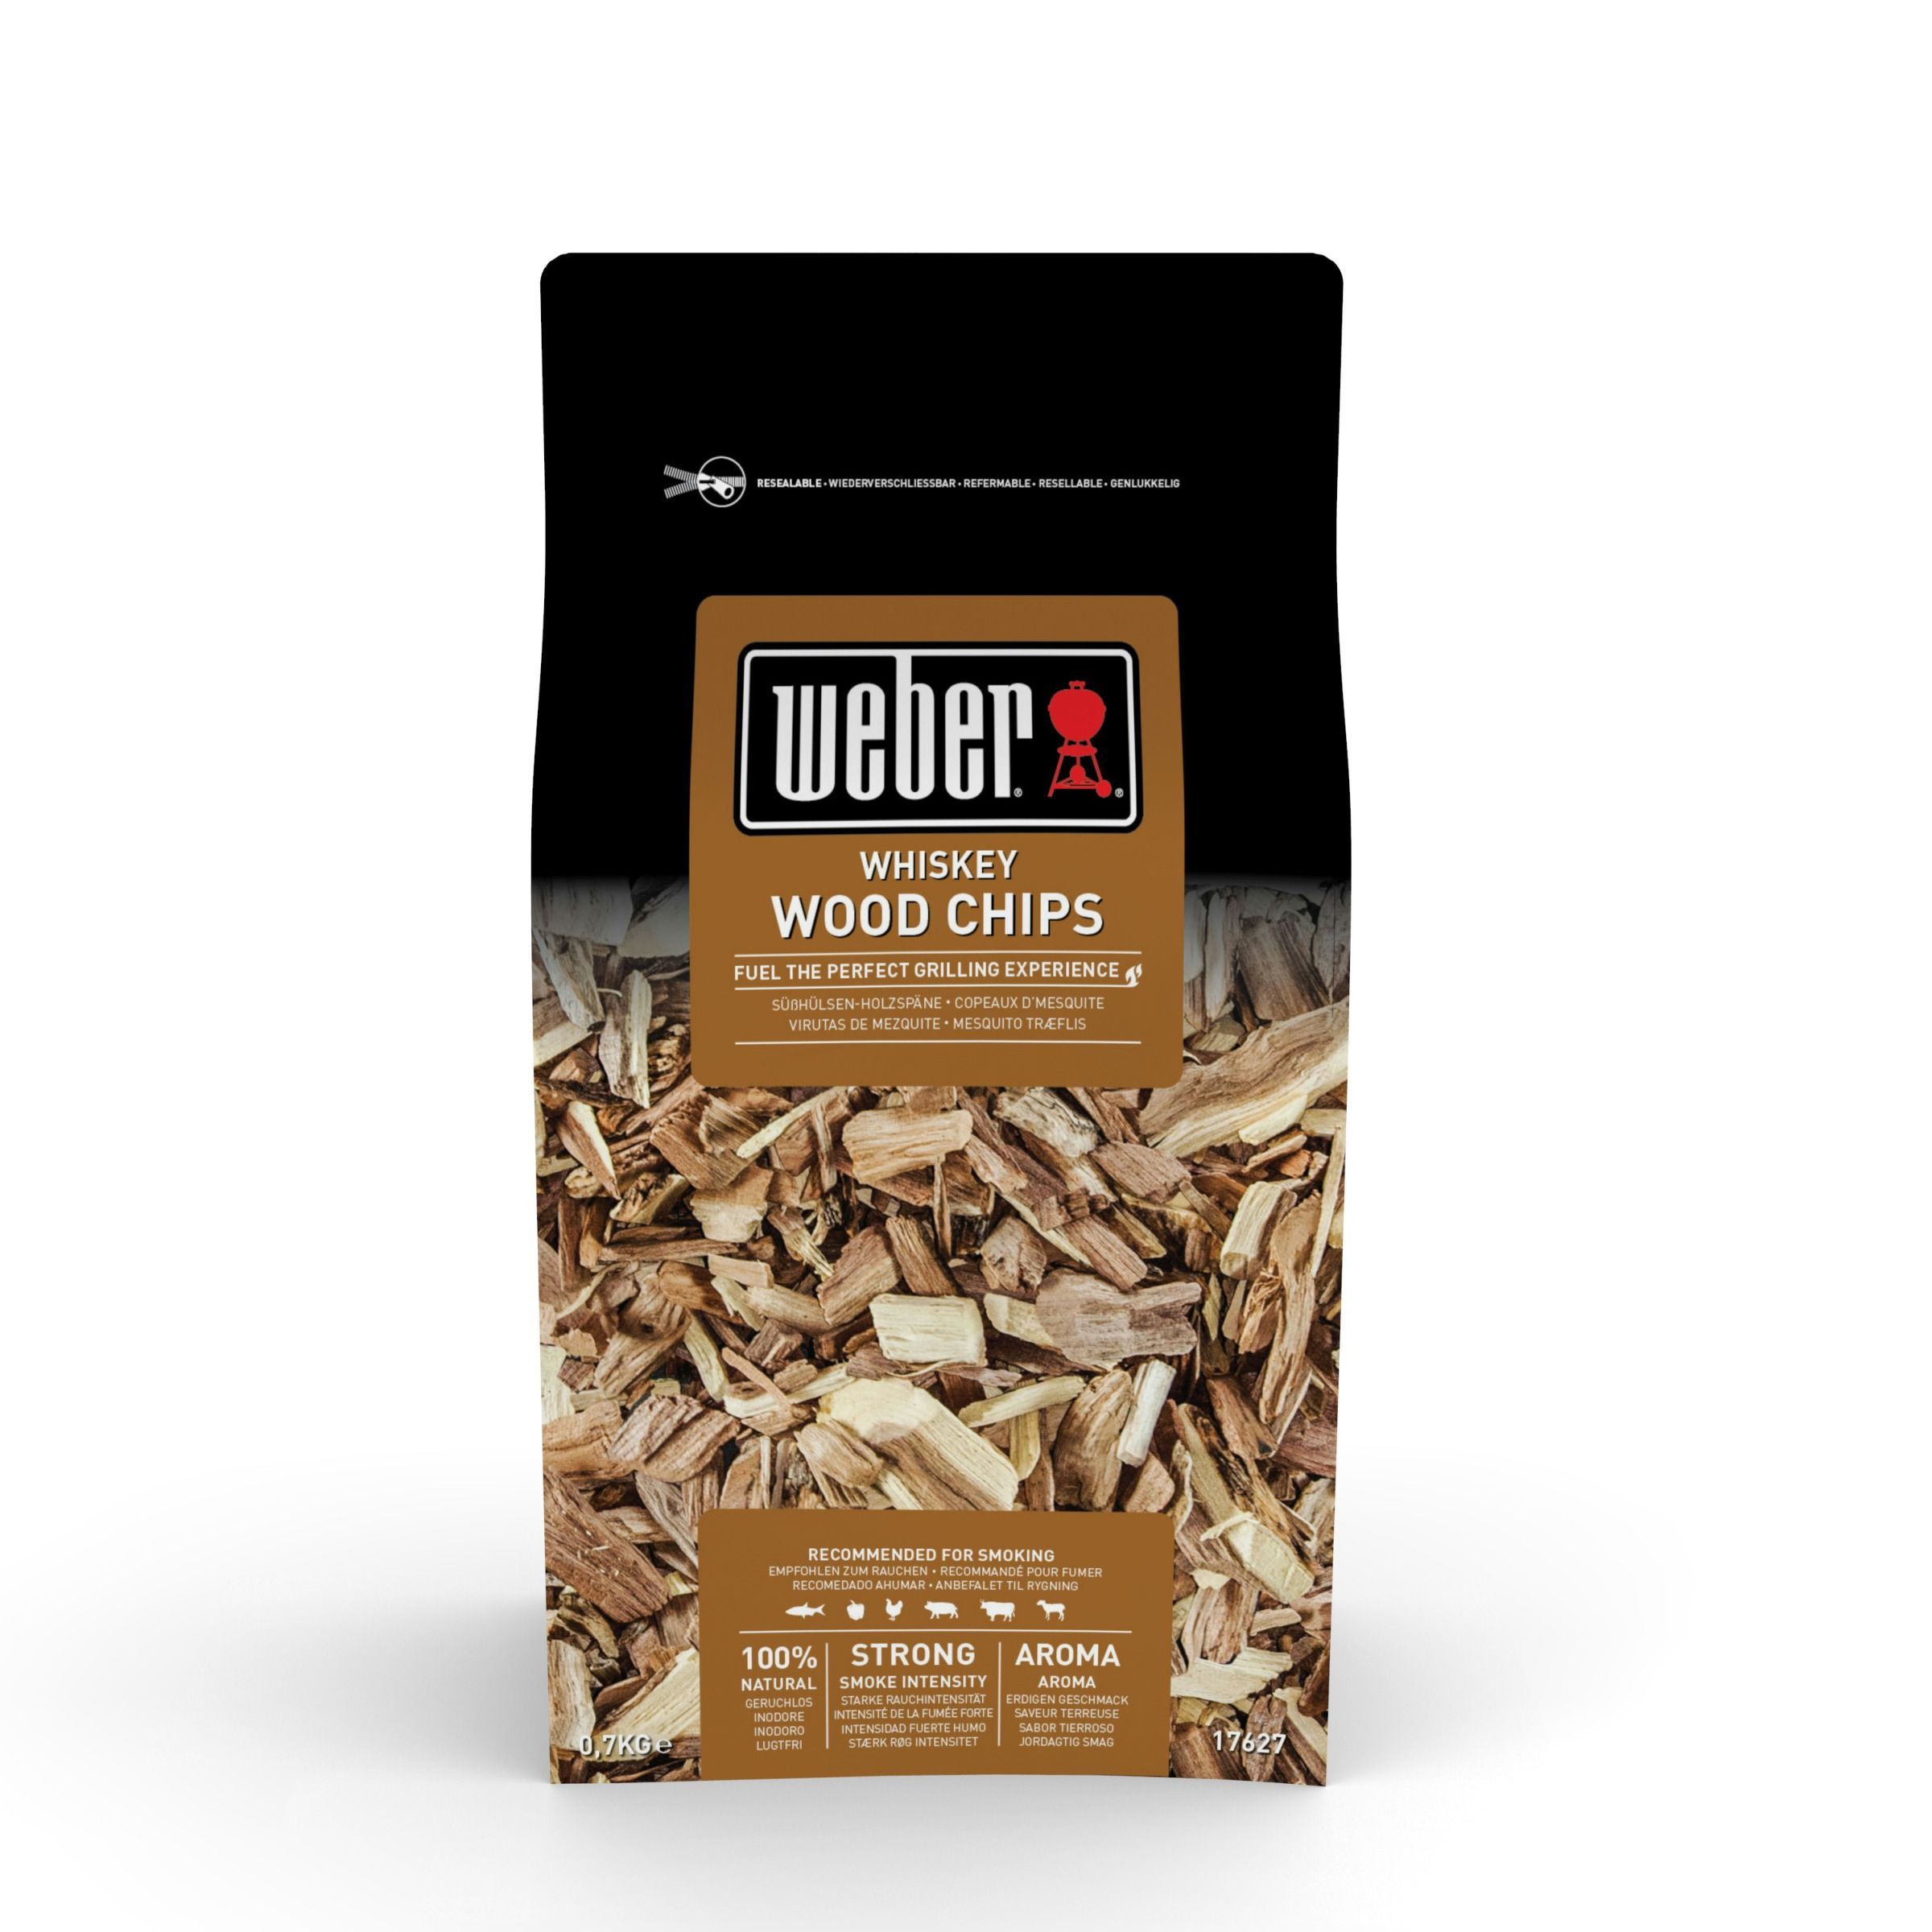 Houtsnippers Bbq Weber Houtsnippers Whiskey Oak 7kg In 2019 Products Weber